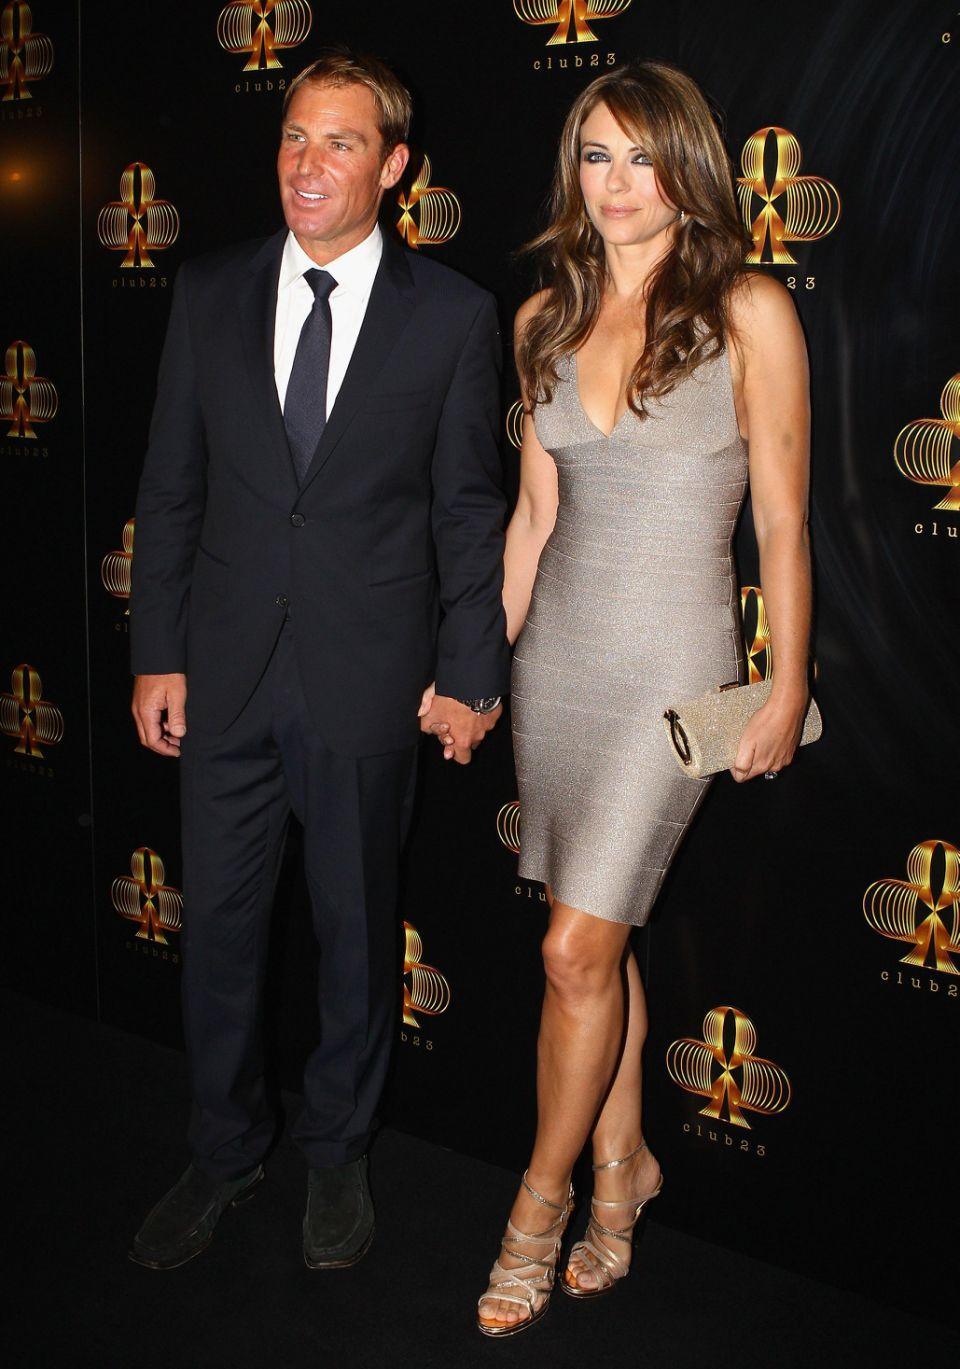 Shane looking noticeably slimmer while in a relationship with Liz Hurley from 2011 to 2013. Source: Getty